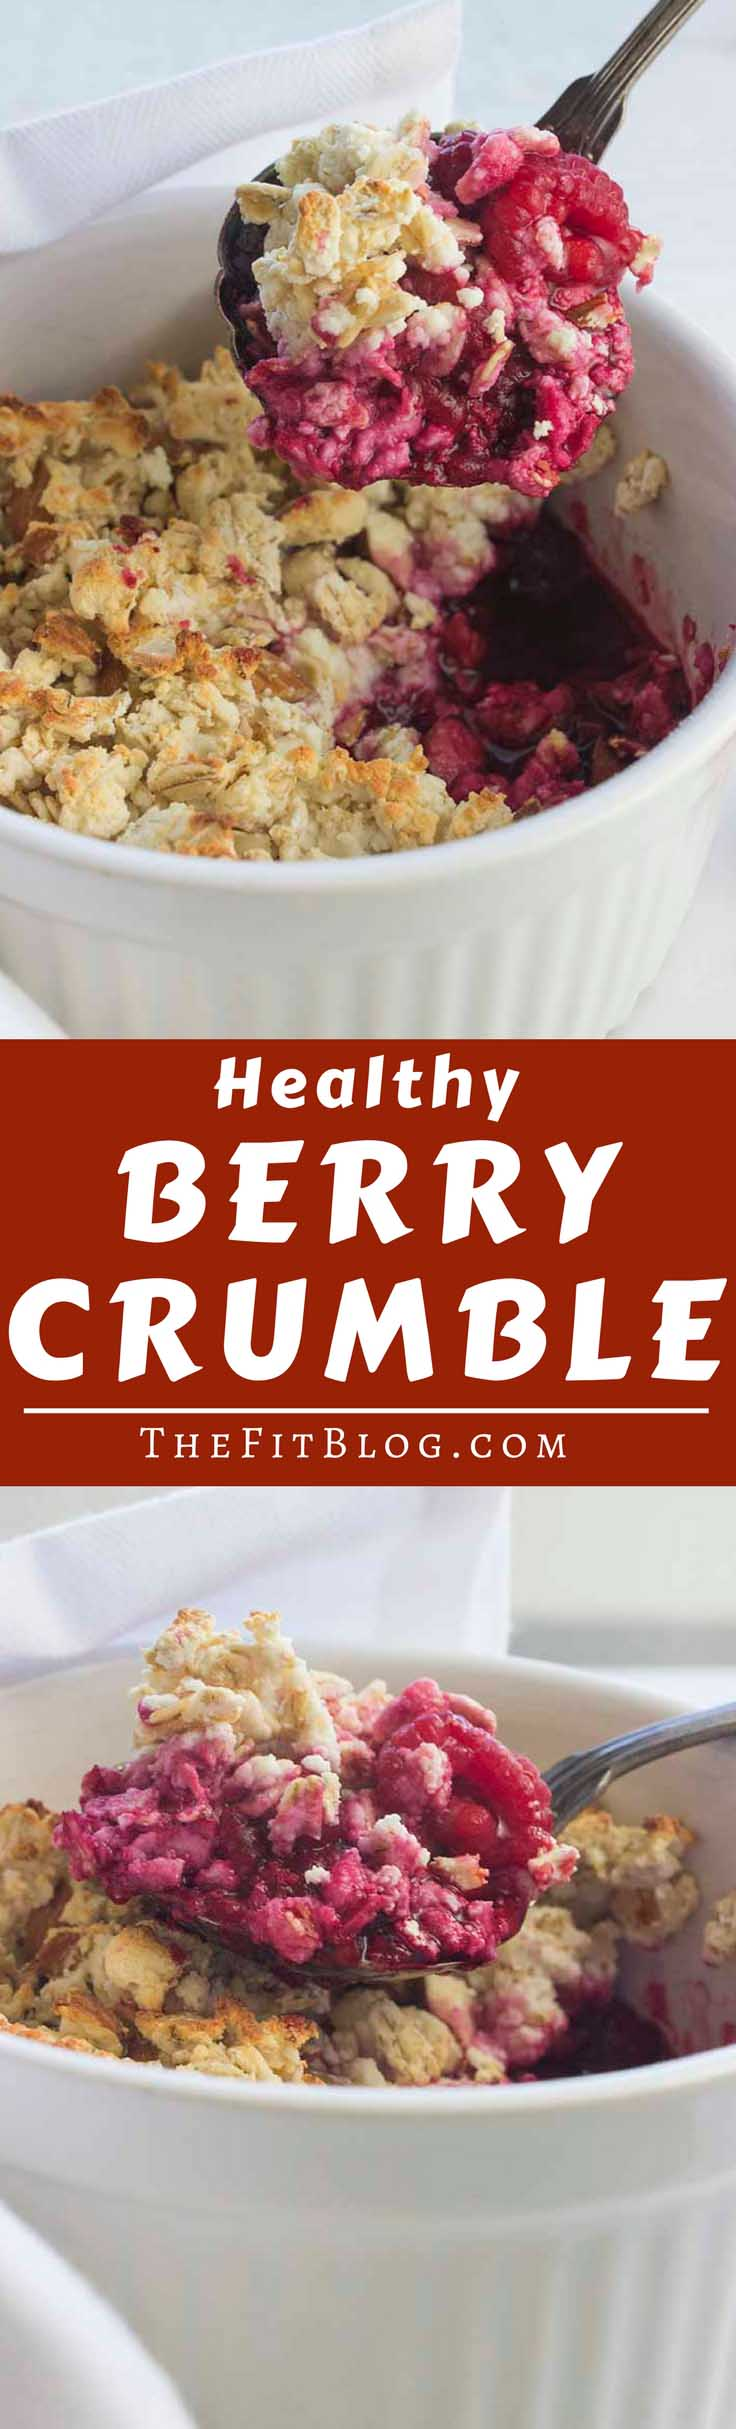 Who says you can't have cake for breakfast? This berry crumble looks and tastes like cake but it actually has the perfect macronutrients for a healthy breakfast or snack  | high protein | low carb | sugar free | gluten free | diabetes friendly |